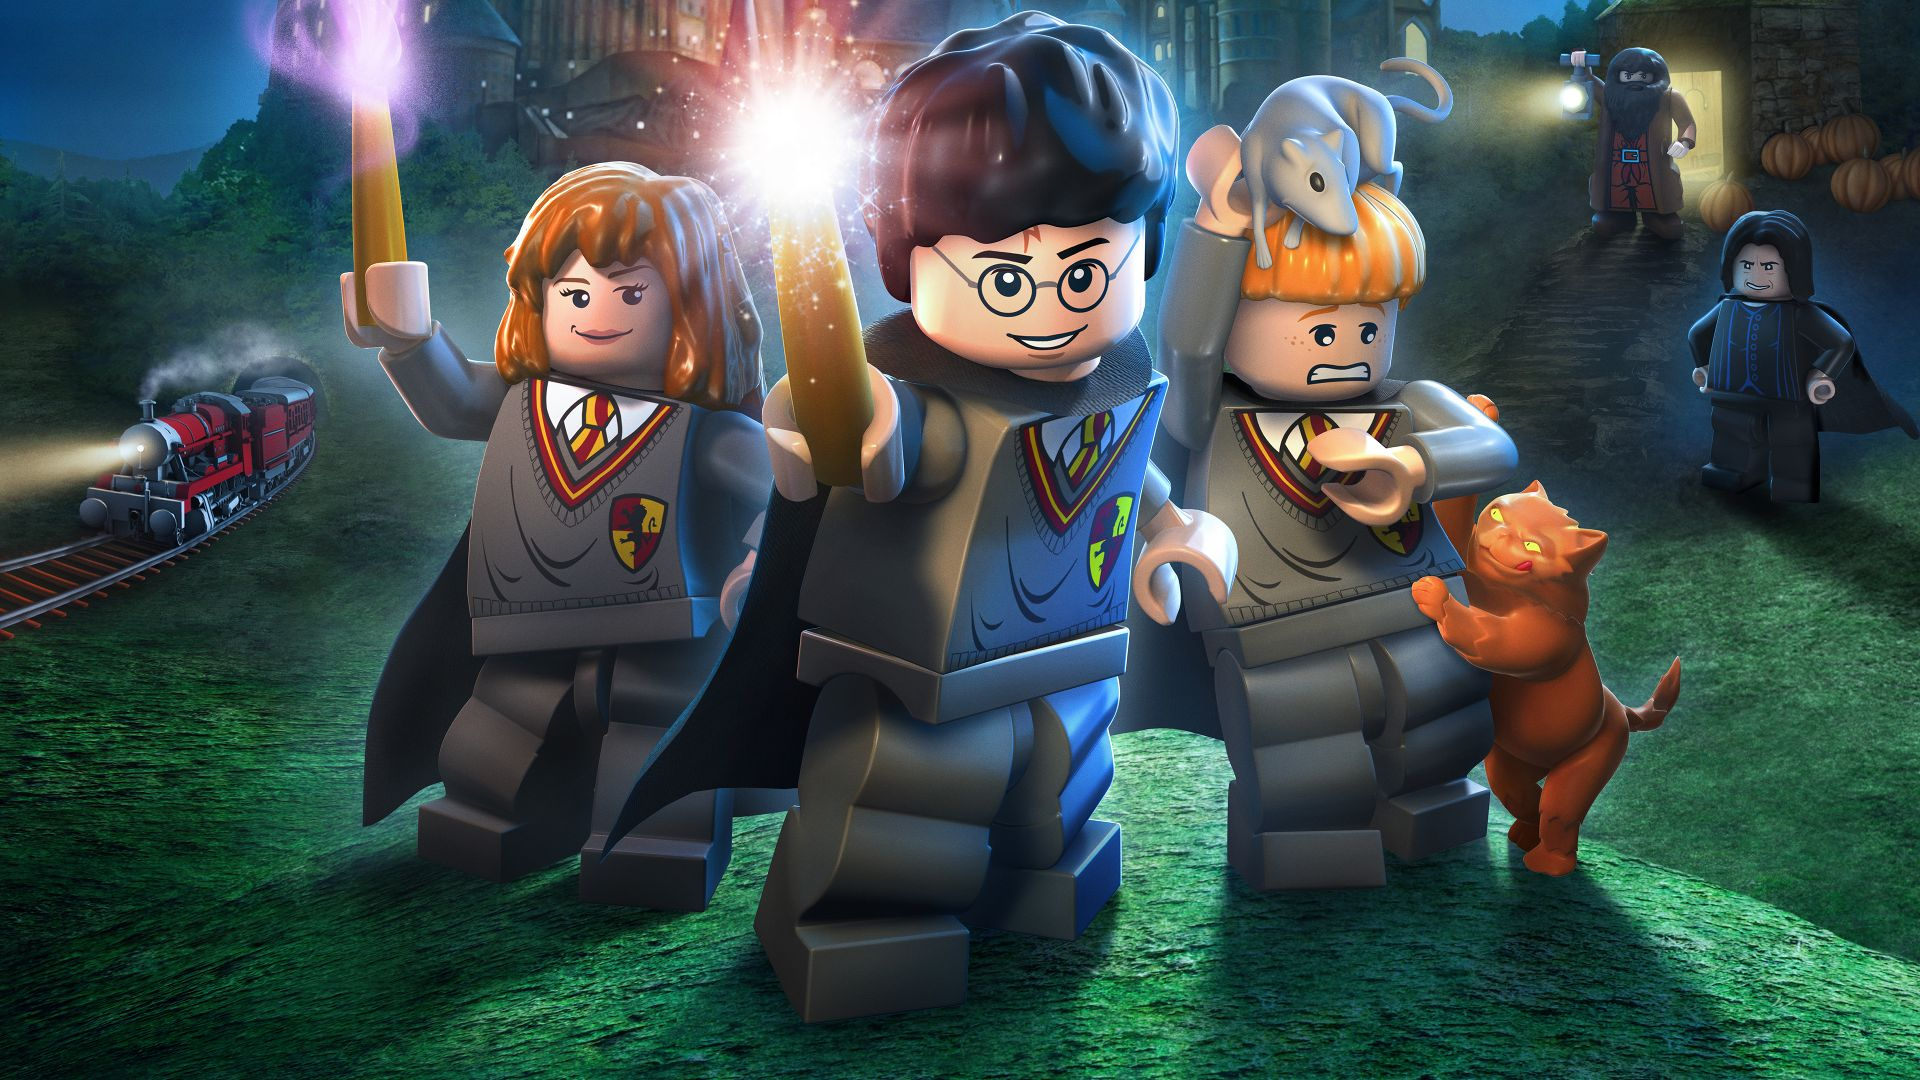 LEGO Harry Potter: Years 1-4 Pics, Video Game Collection